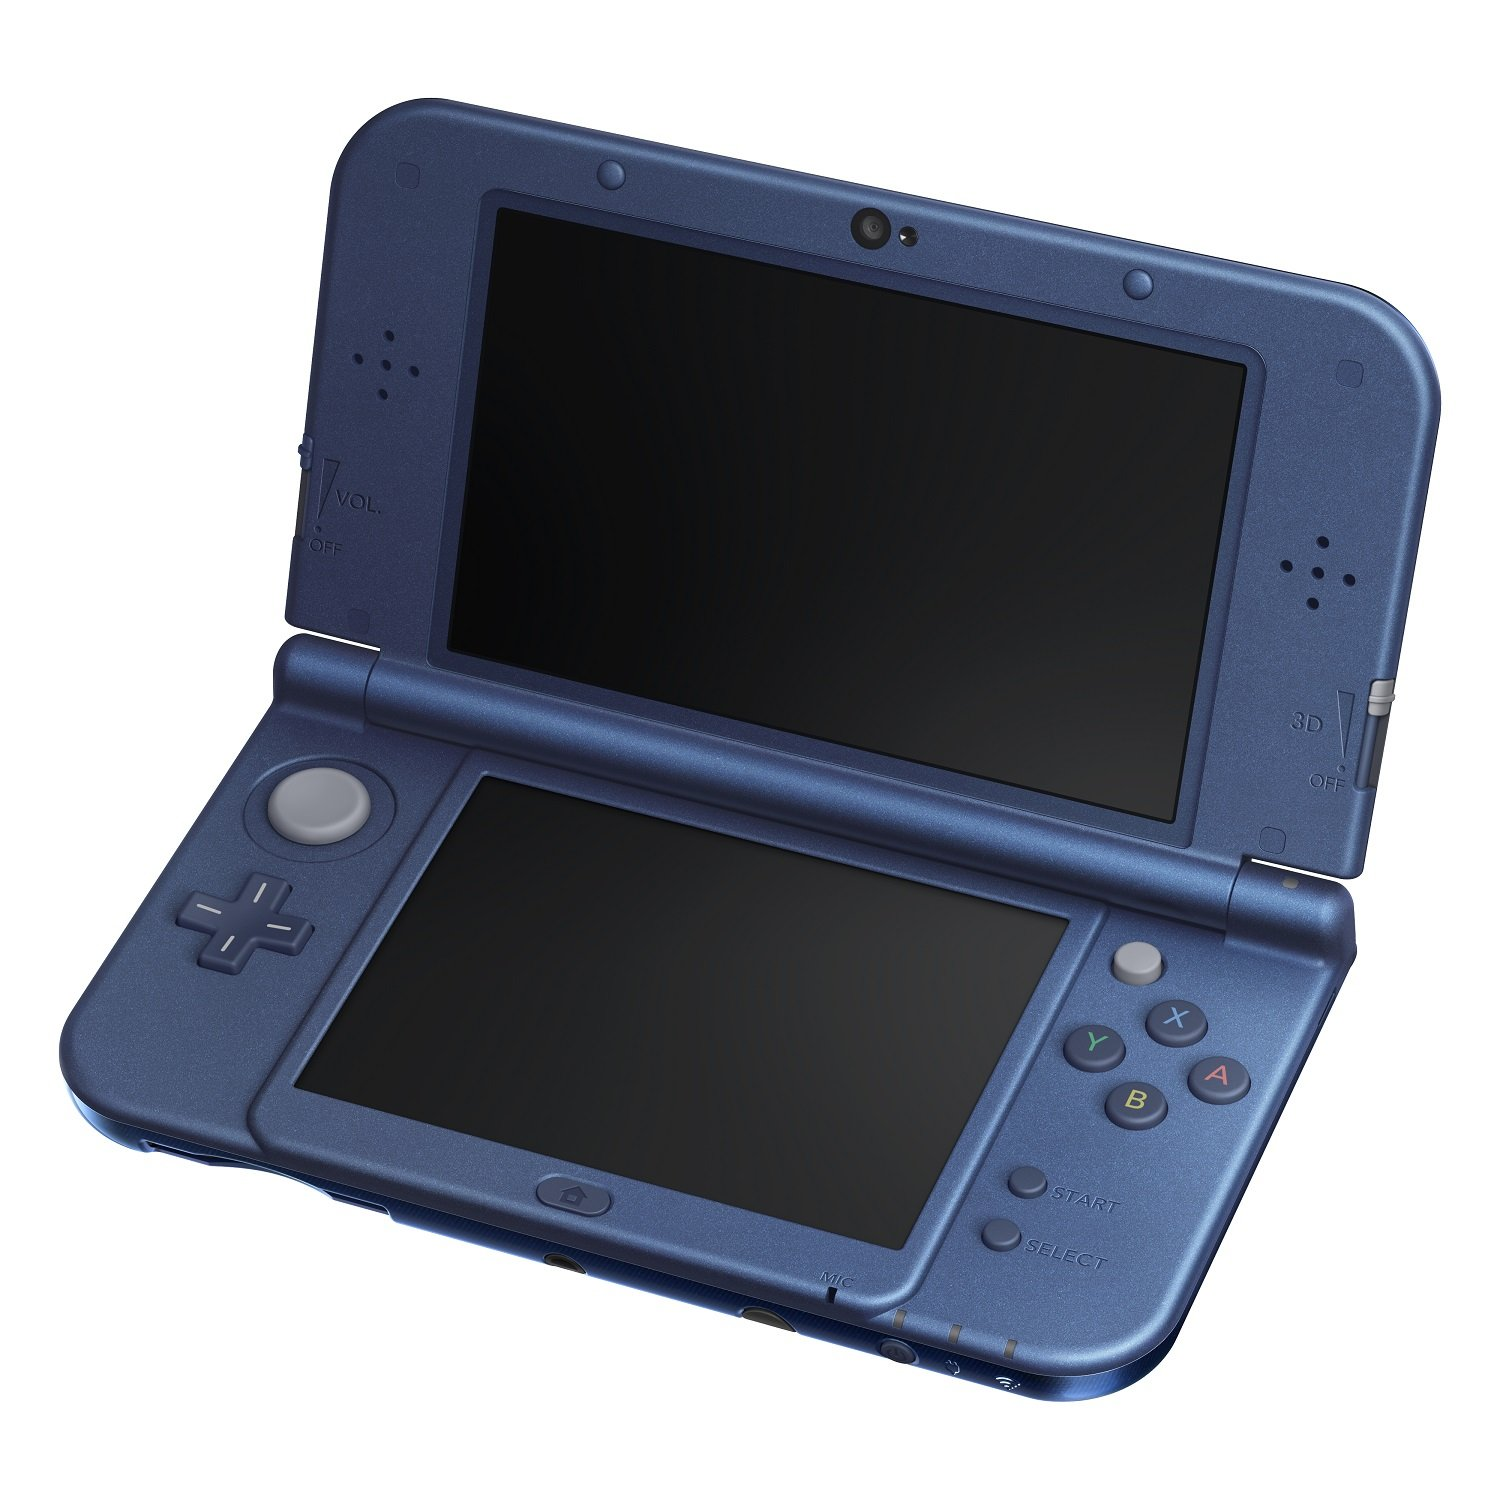 Nintendo New 3DS XL - Galaxy Style by Nintendo (Image #4)